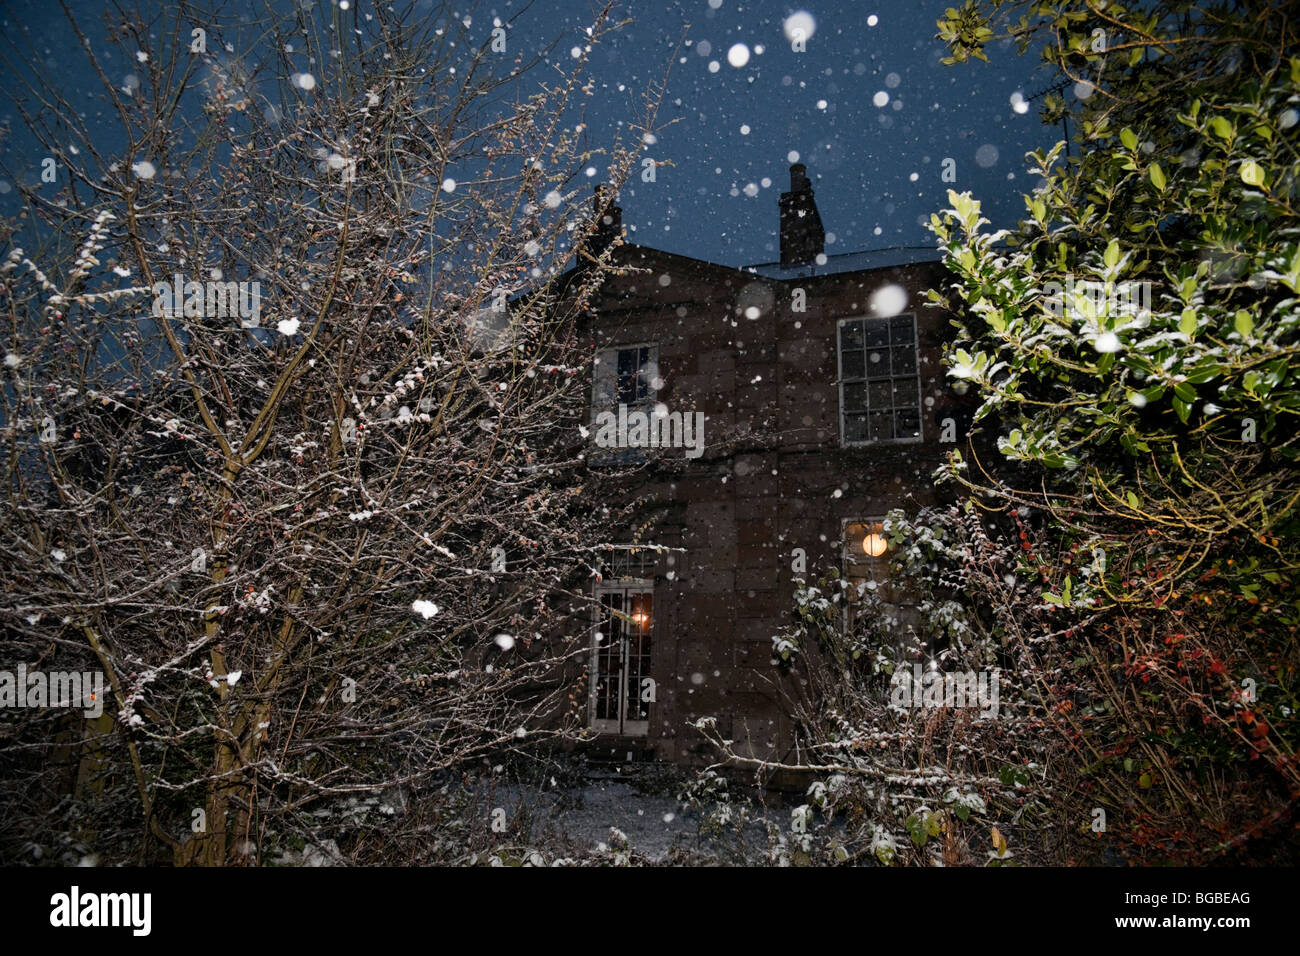 Gentle December snow falling in Scotland - big flakes slowly drifting down in still air outside a Georgian house - Stock Image